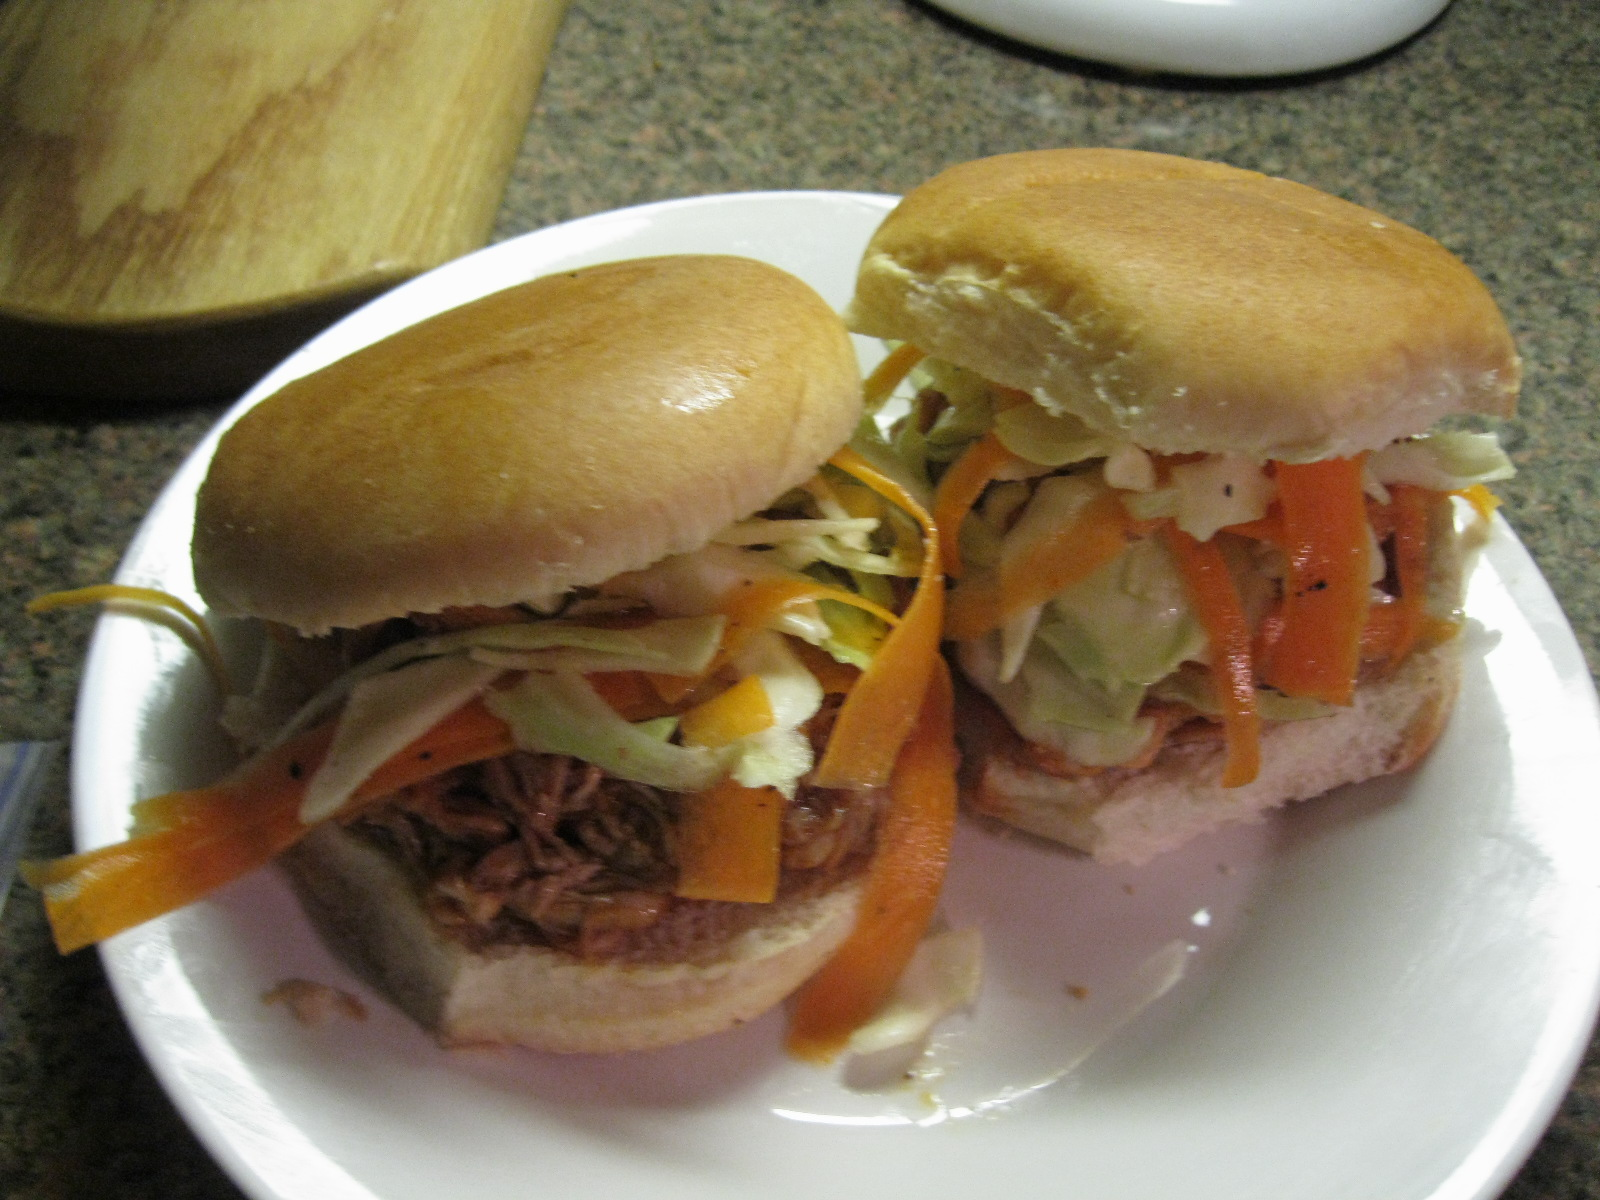 The Coffee Shop: Pulled-Pork Sandwiches with Coleslaw